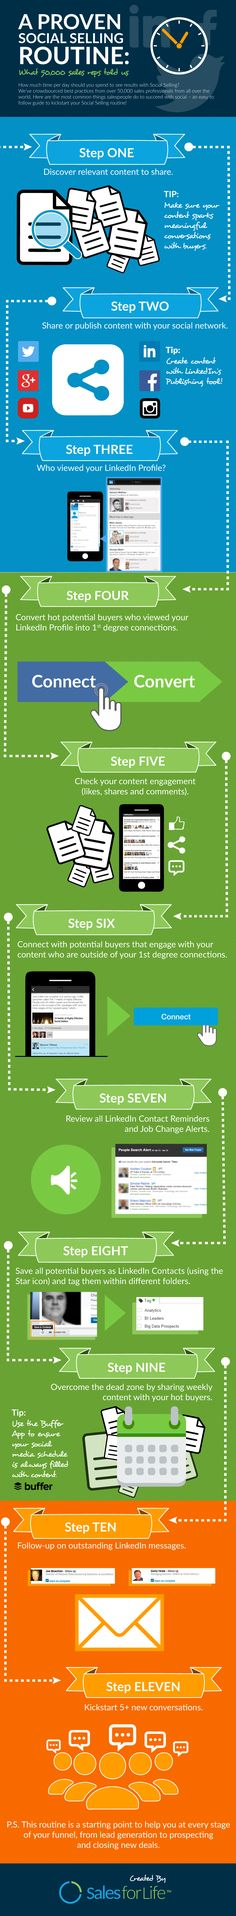 A Proven Social Selling Routine #infographic #SocialMedia #Marketing #Business #Sales